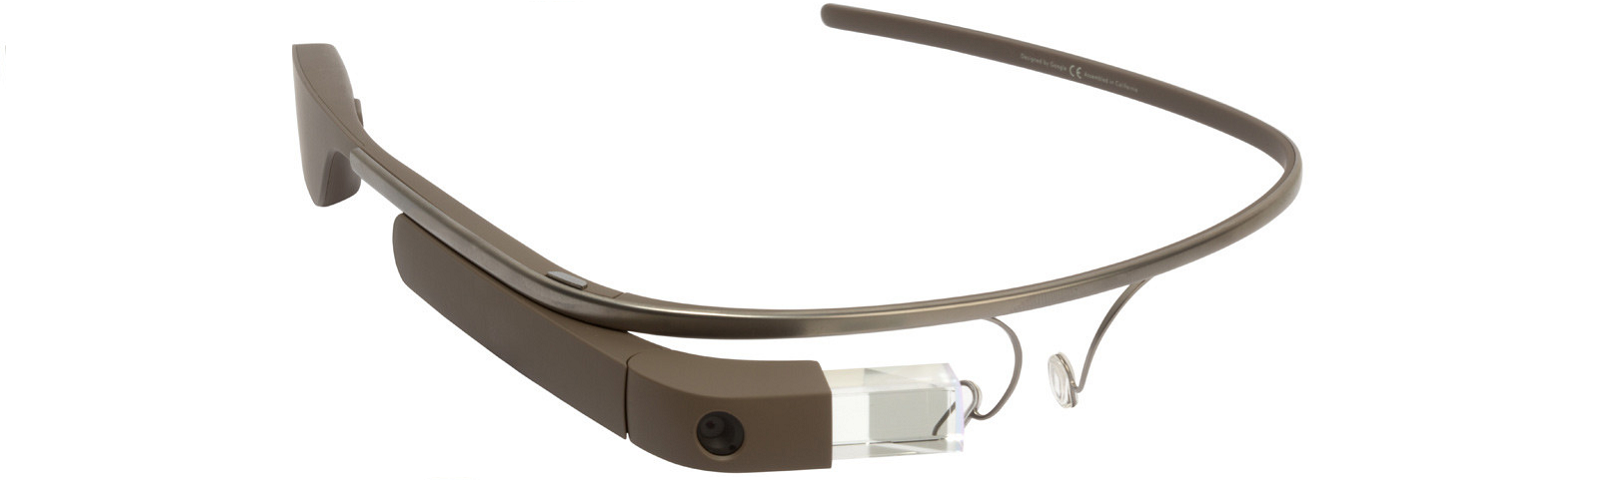 Google glass device